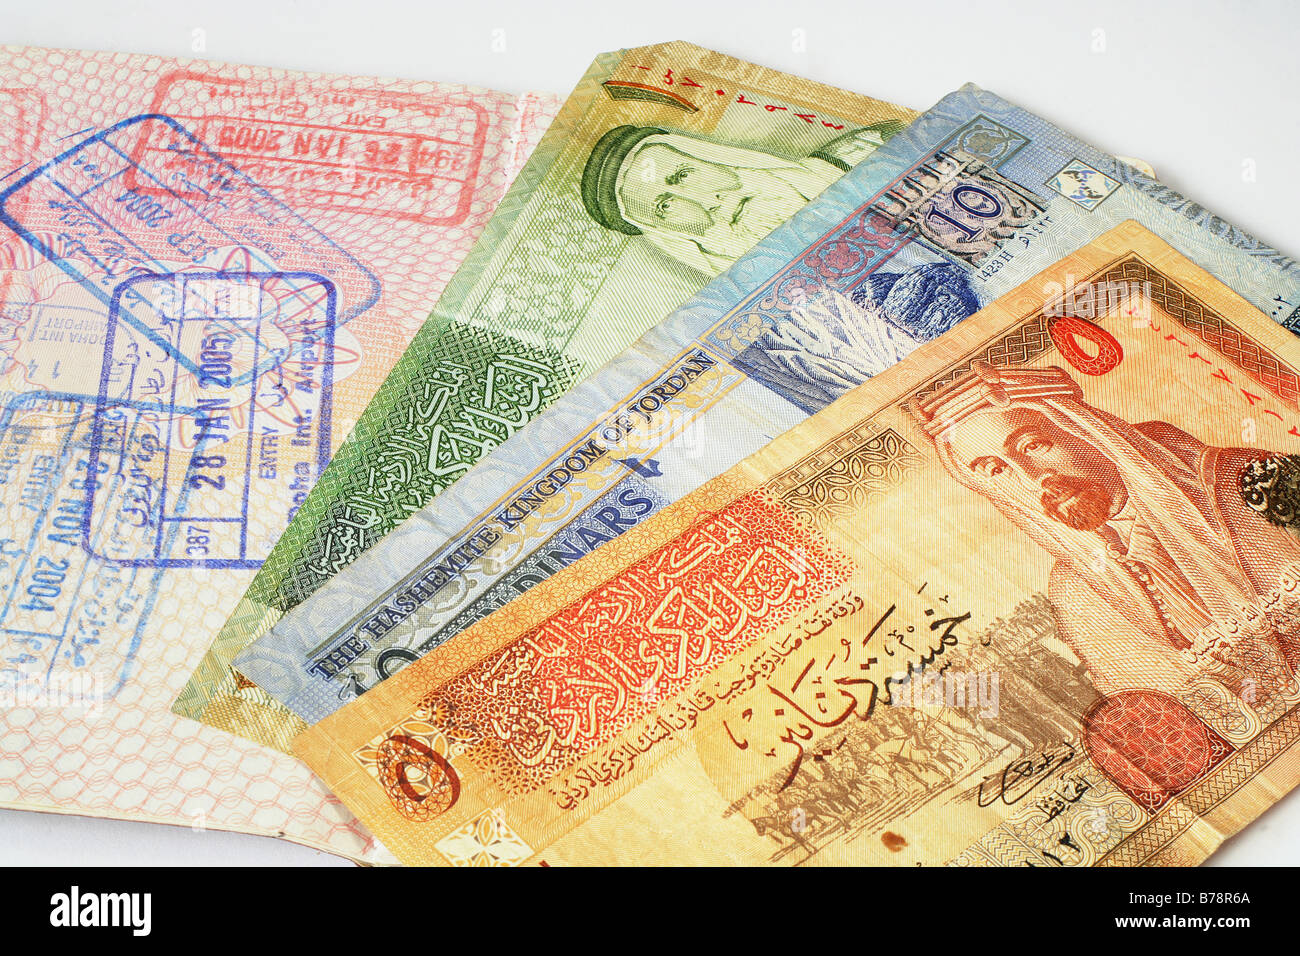 A passport with Middle Eastern visa stamps and a bunch of Jordanian currency notes. - Stock Image